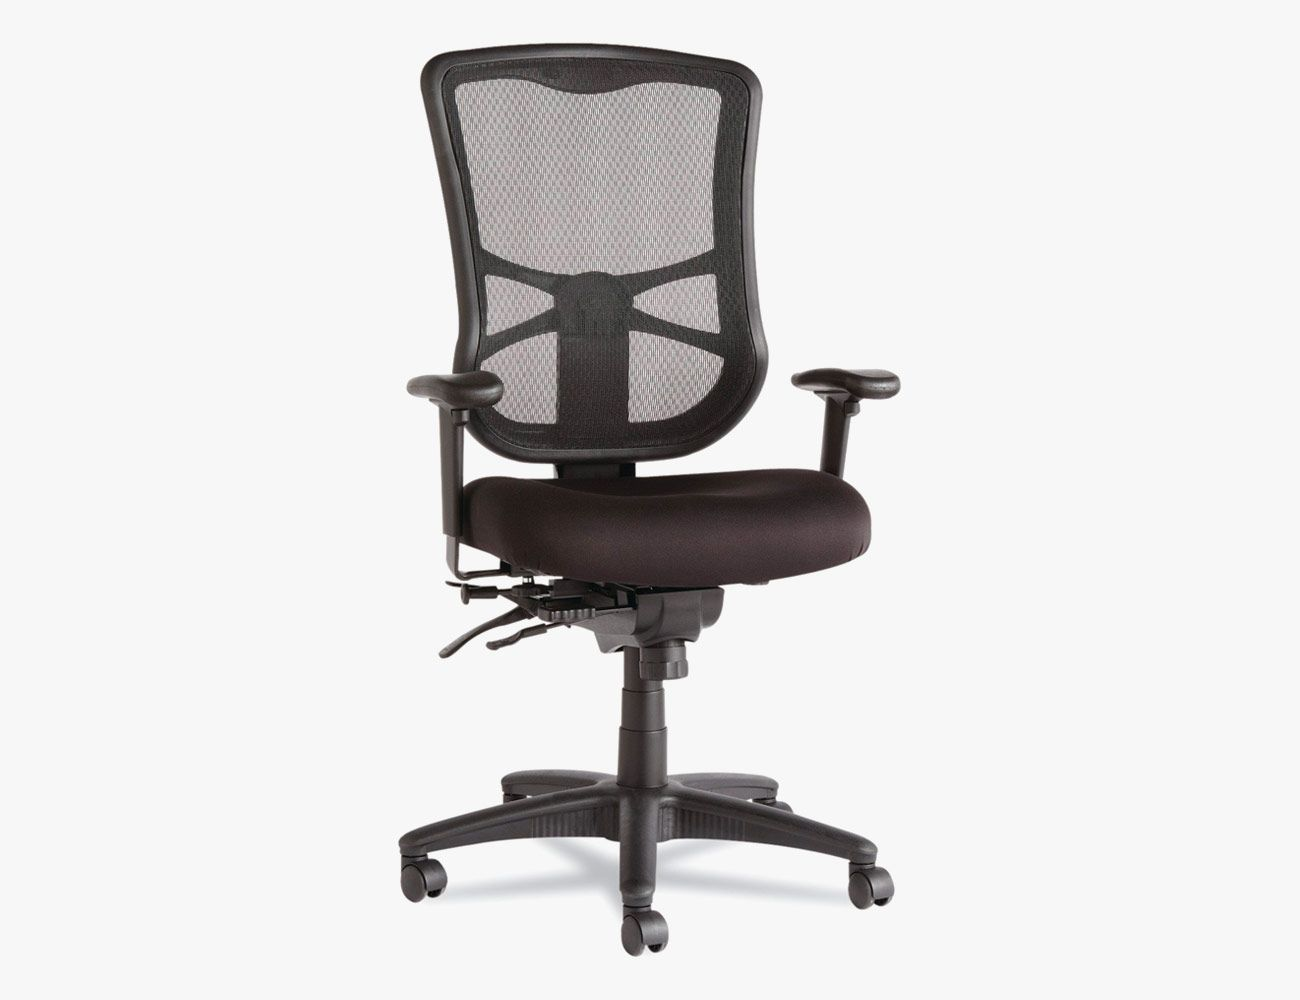 Groovy The 14 Best Office Chairs Of 2019 Gear Patrol Pabps2019 Chair Design Images Pabps2019Com